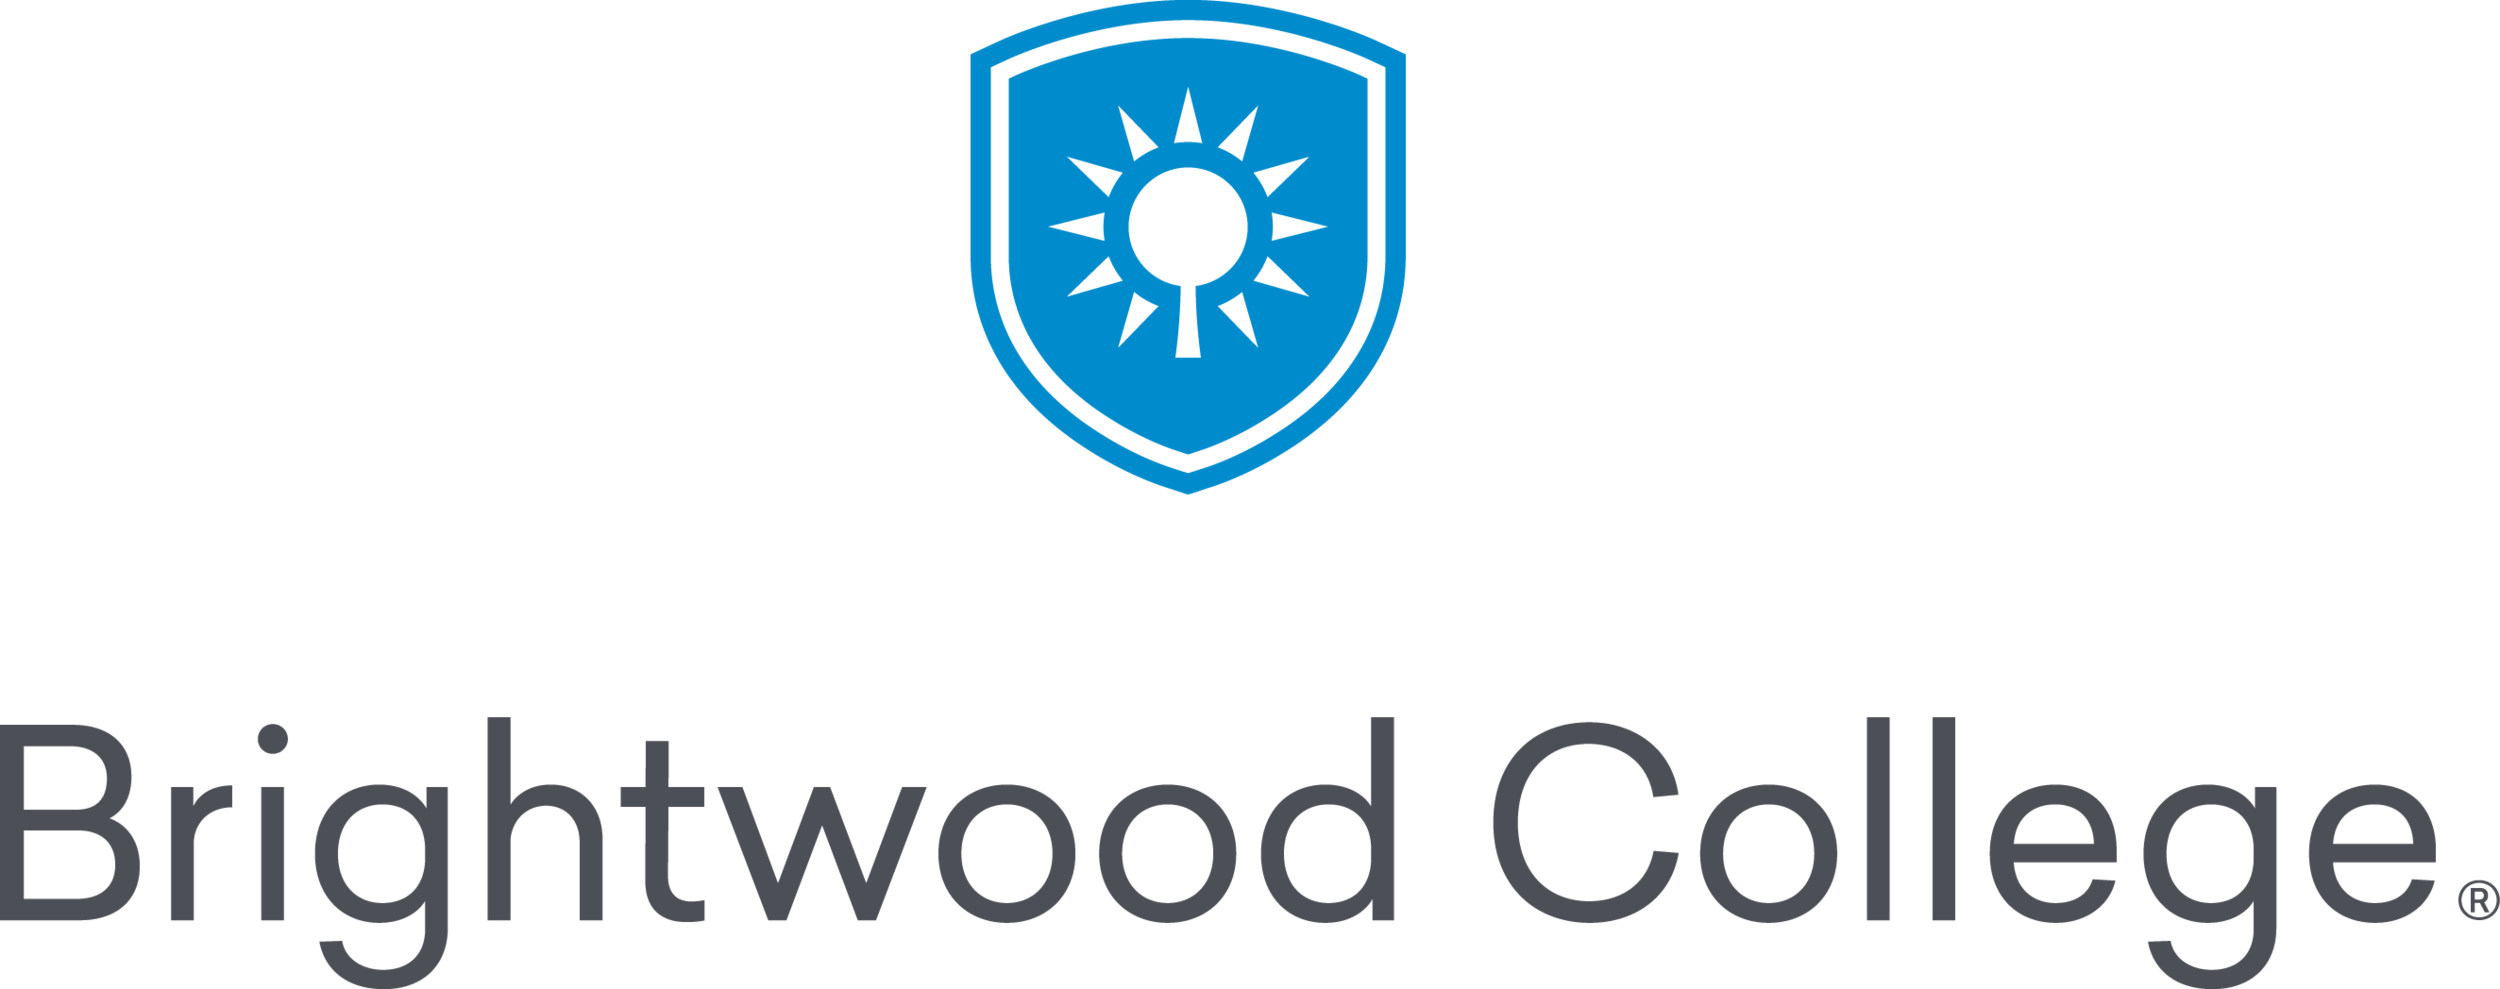 BRIGHTWOOD_LOGO_Centered_2color.png